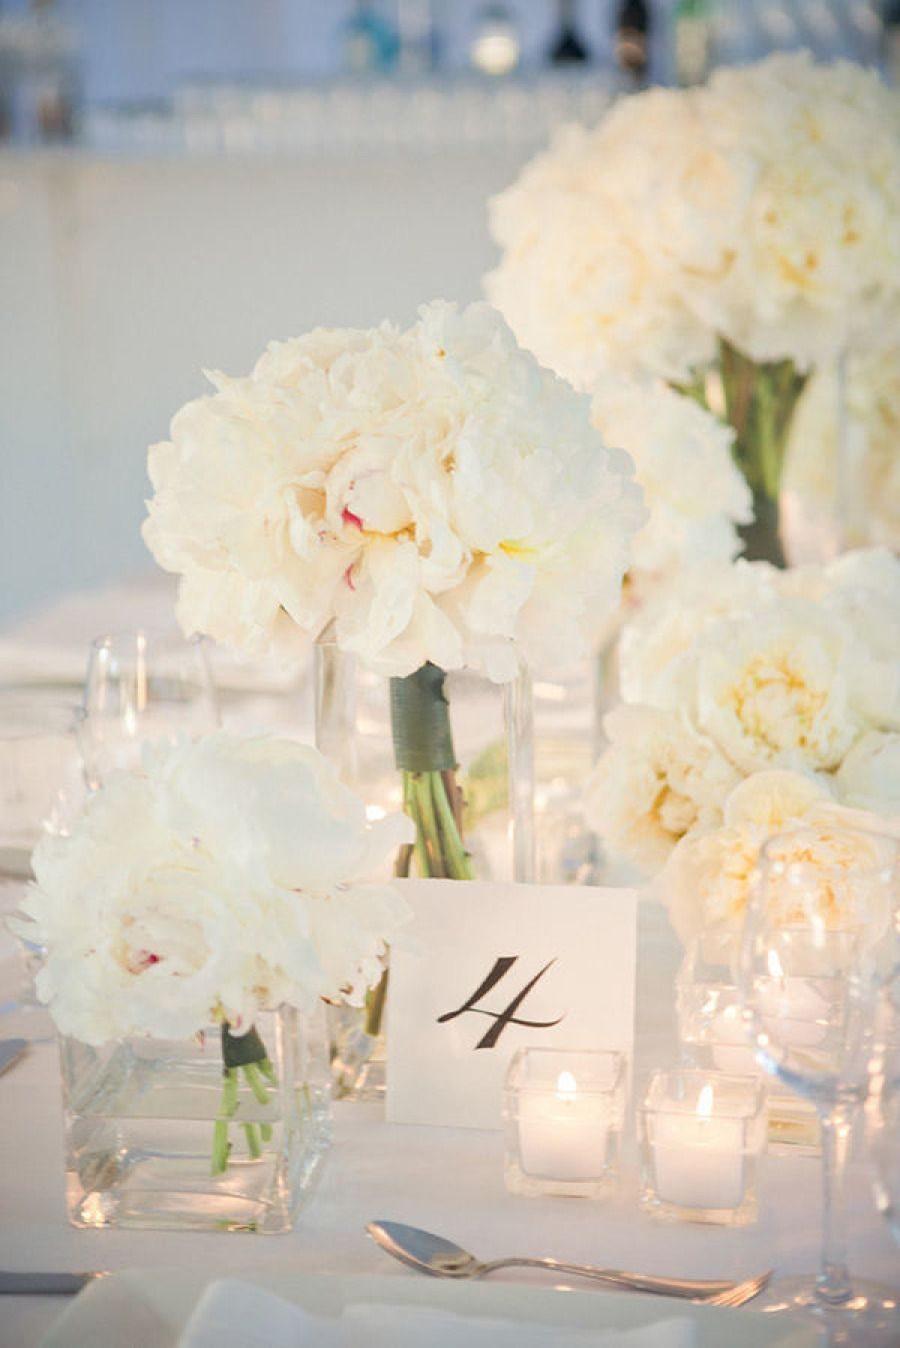 White wedding decoration ideas  Ways to Cut Costs Supersize Your Flowers  Wedding Reception Decor